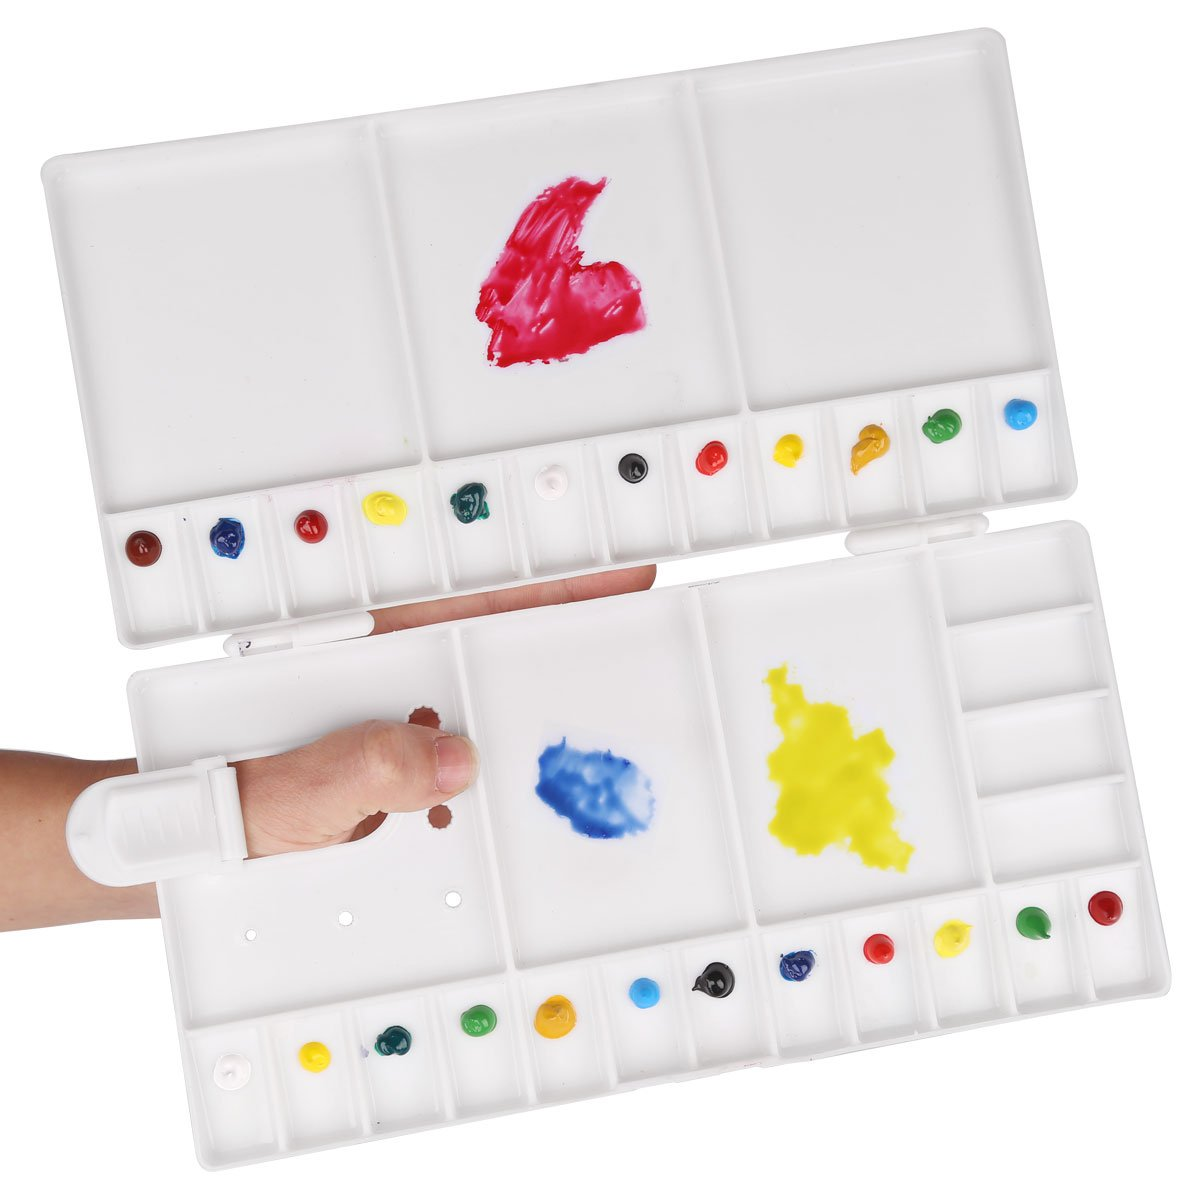 Transon Large Paint Palette Box 33 Wells for Watercolor,Gouache, Acrylic and Oil Paint with 1 Paint Brush Transon Art Materials RD-33